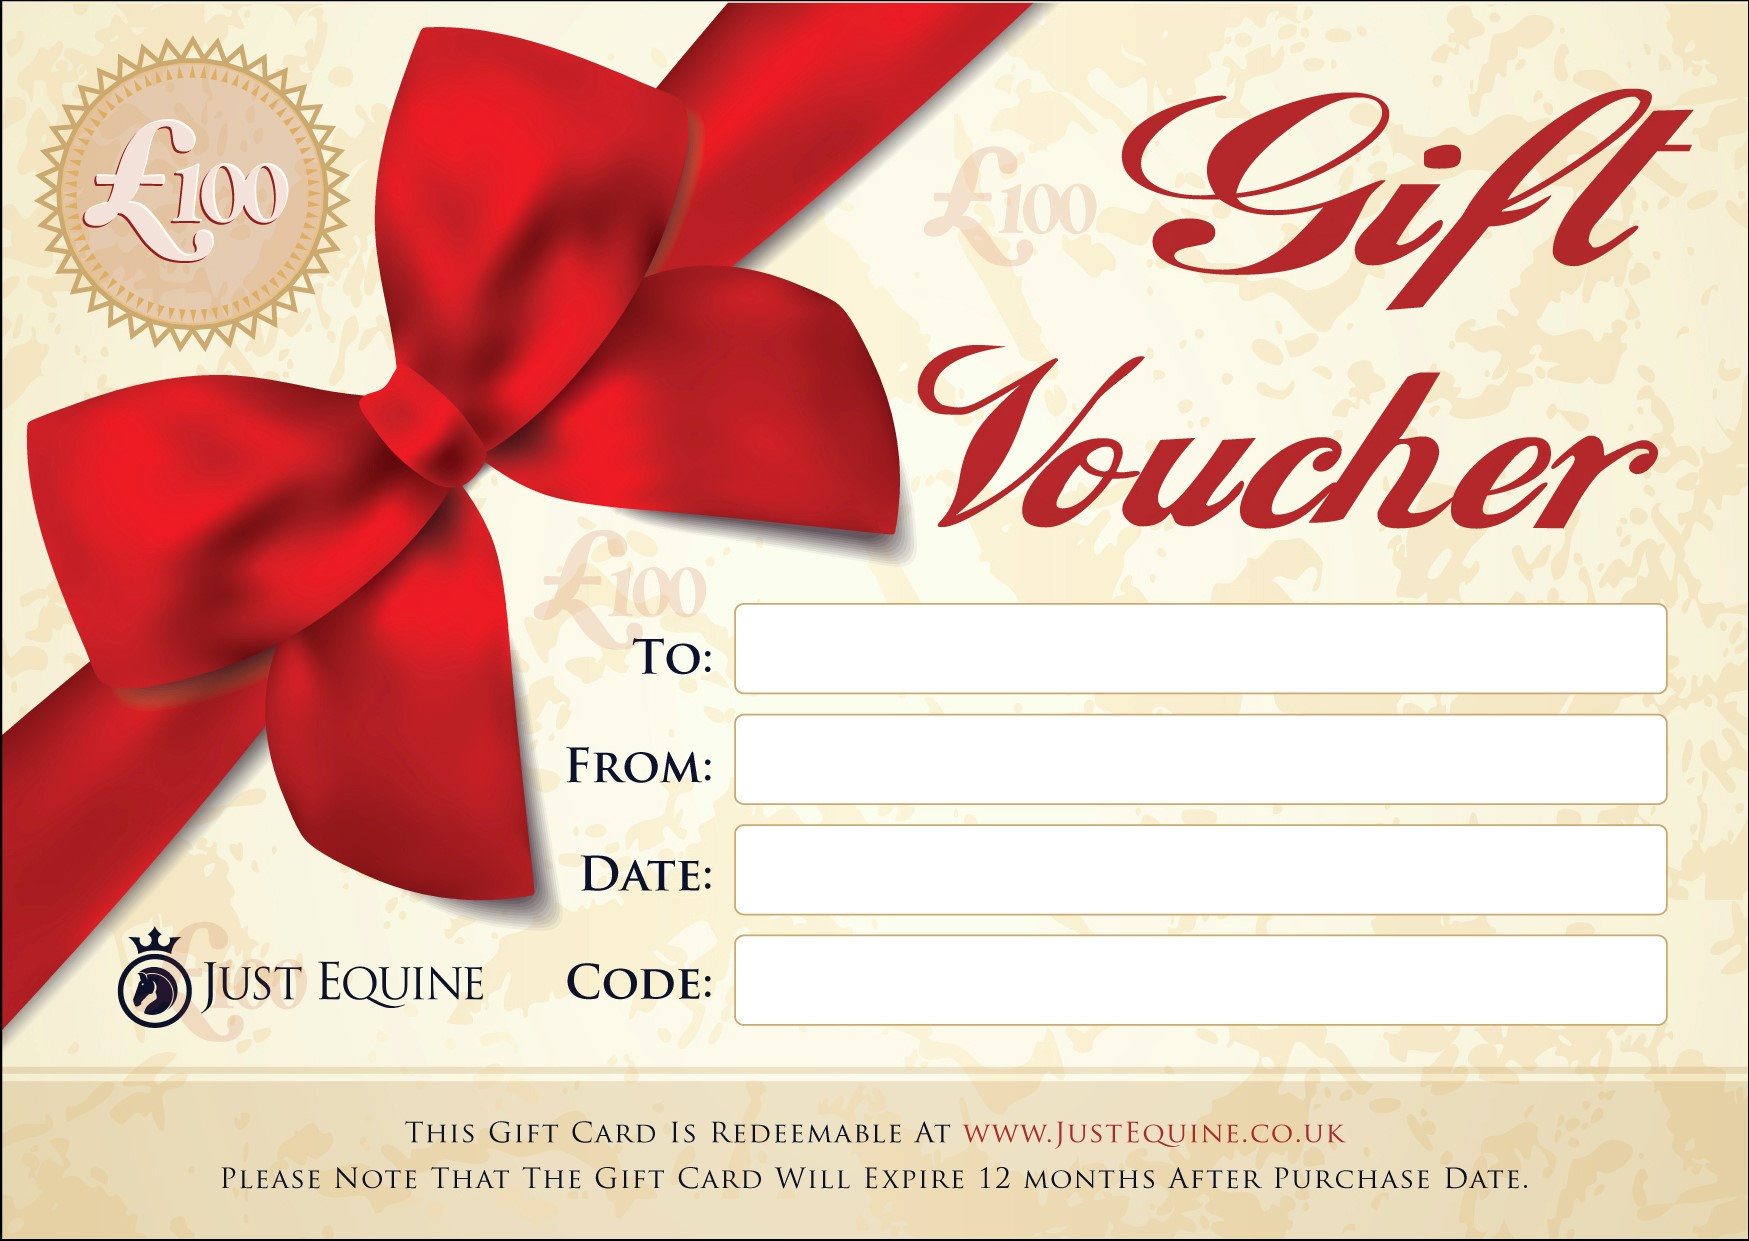 Gift vouchers and gift cards from just equine equestrian supplies gift vouchers 100 just equine negle Gallery